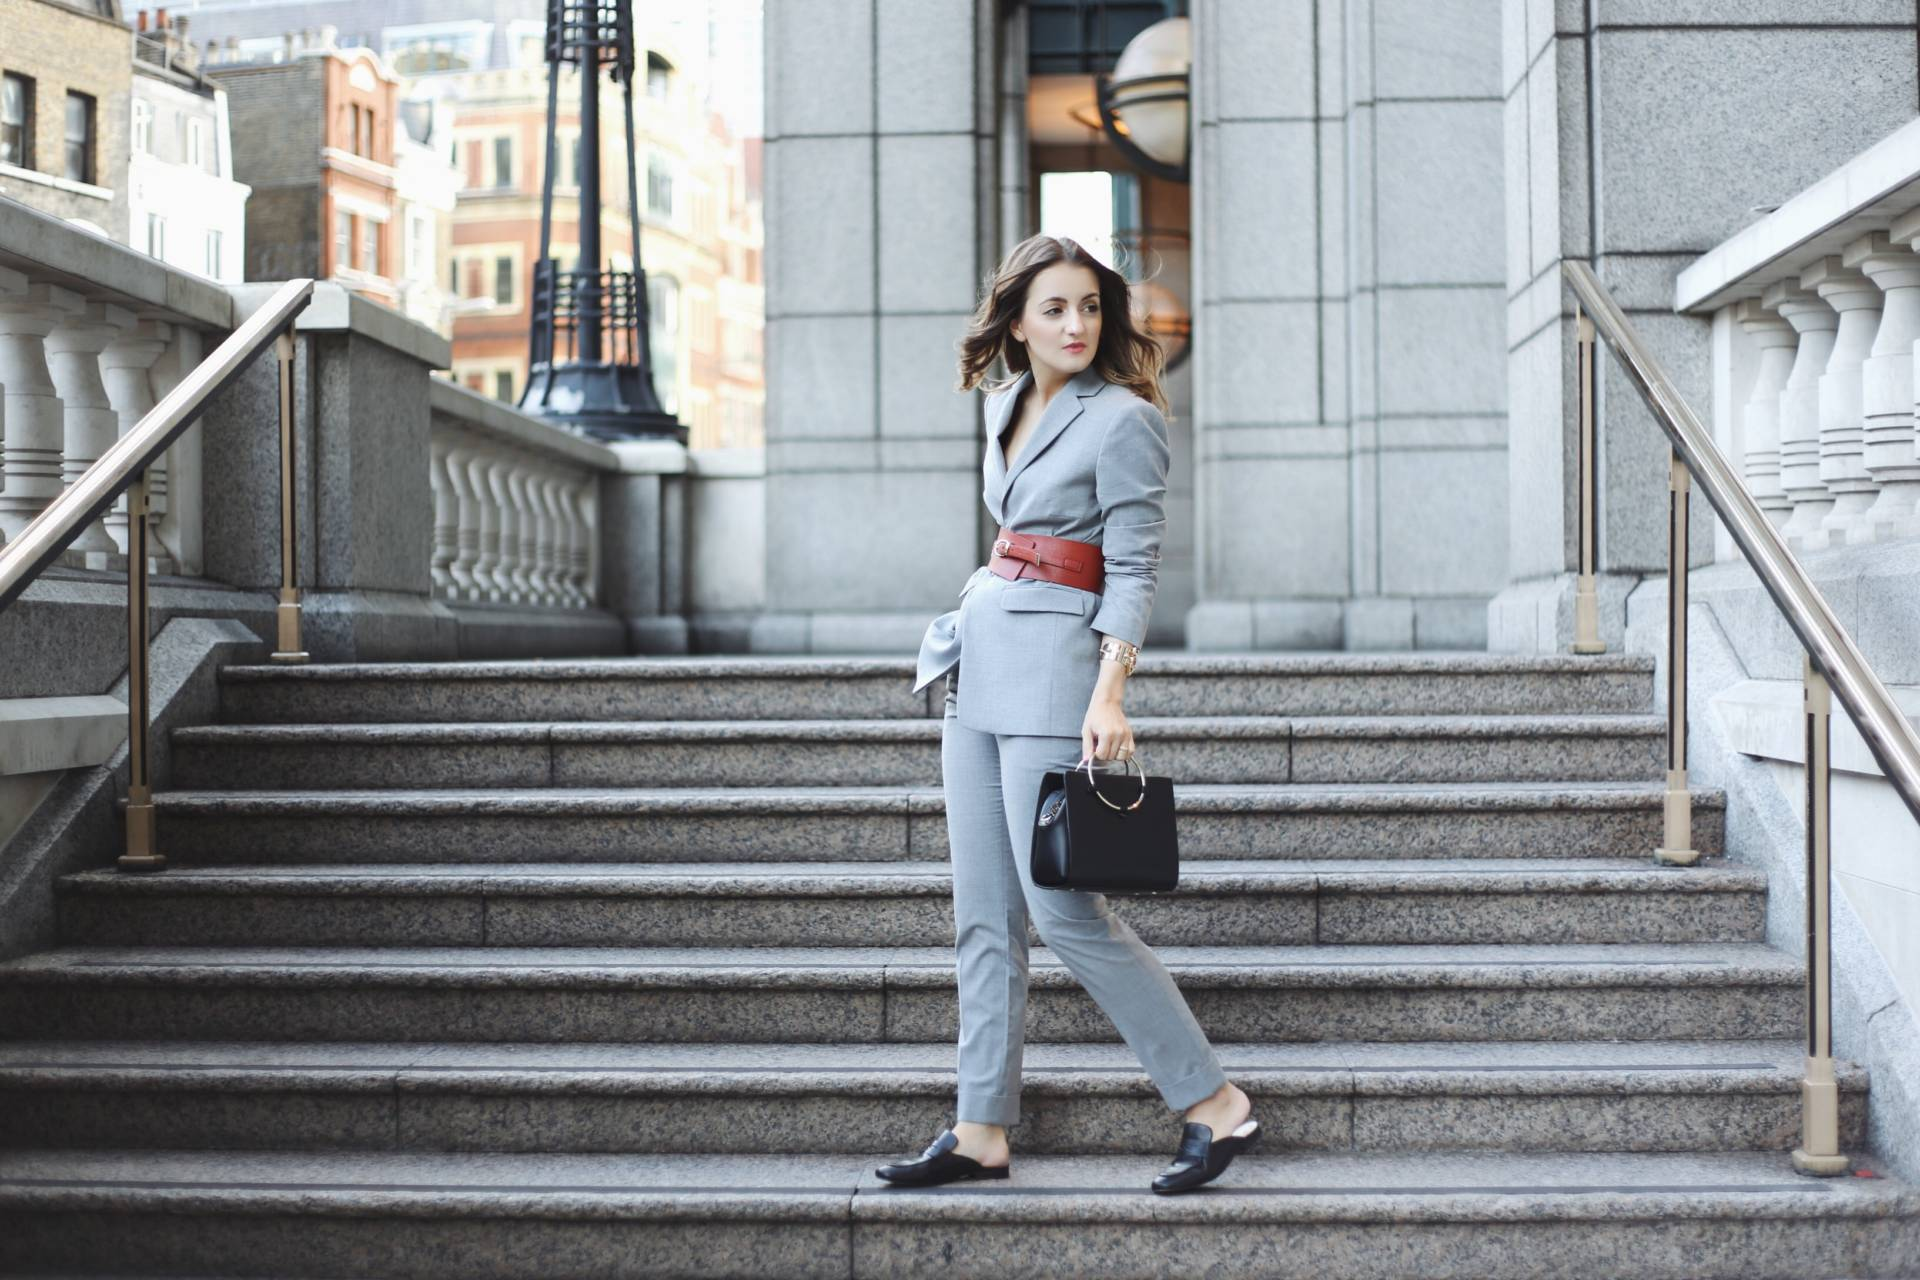 The smart suit for all ages